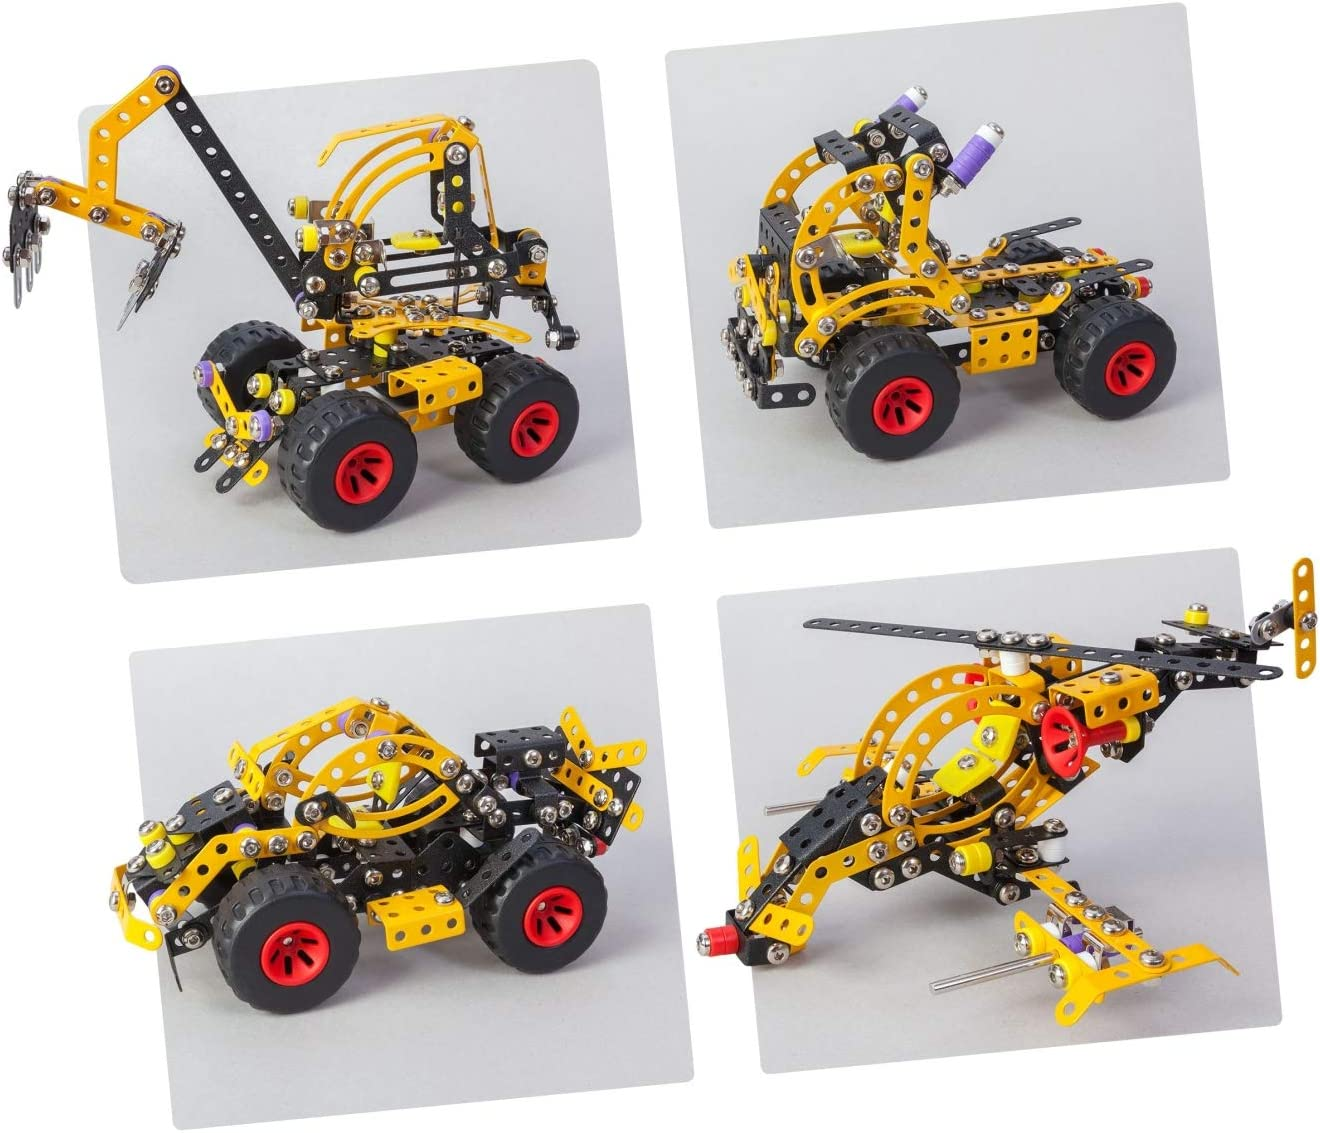 Alexander Toys PRO Noah 5 in 1 Backhoe Loader Pure Metal Construction Model Building Kits Fully Compatible with Erector and All Other Metal Construction Sets and STEM Toys